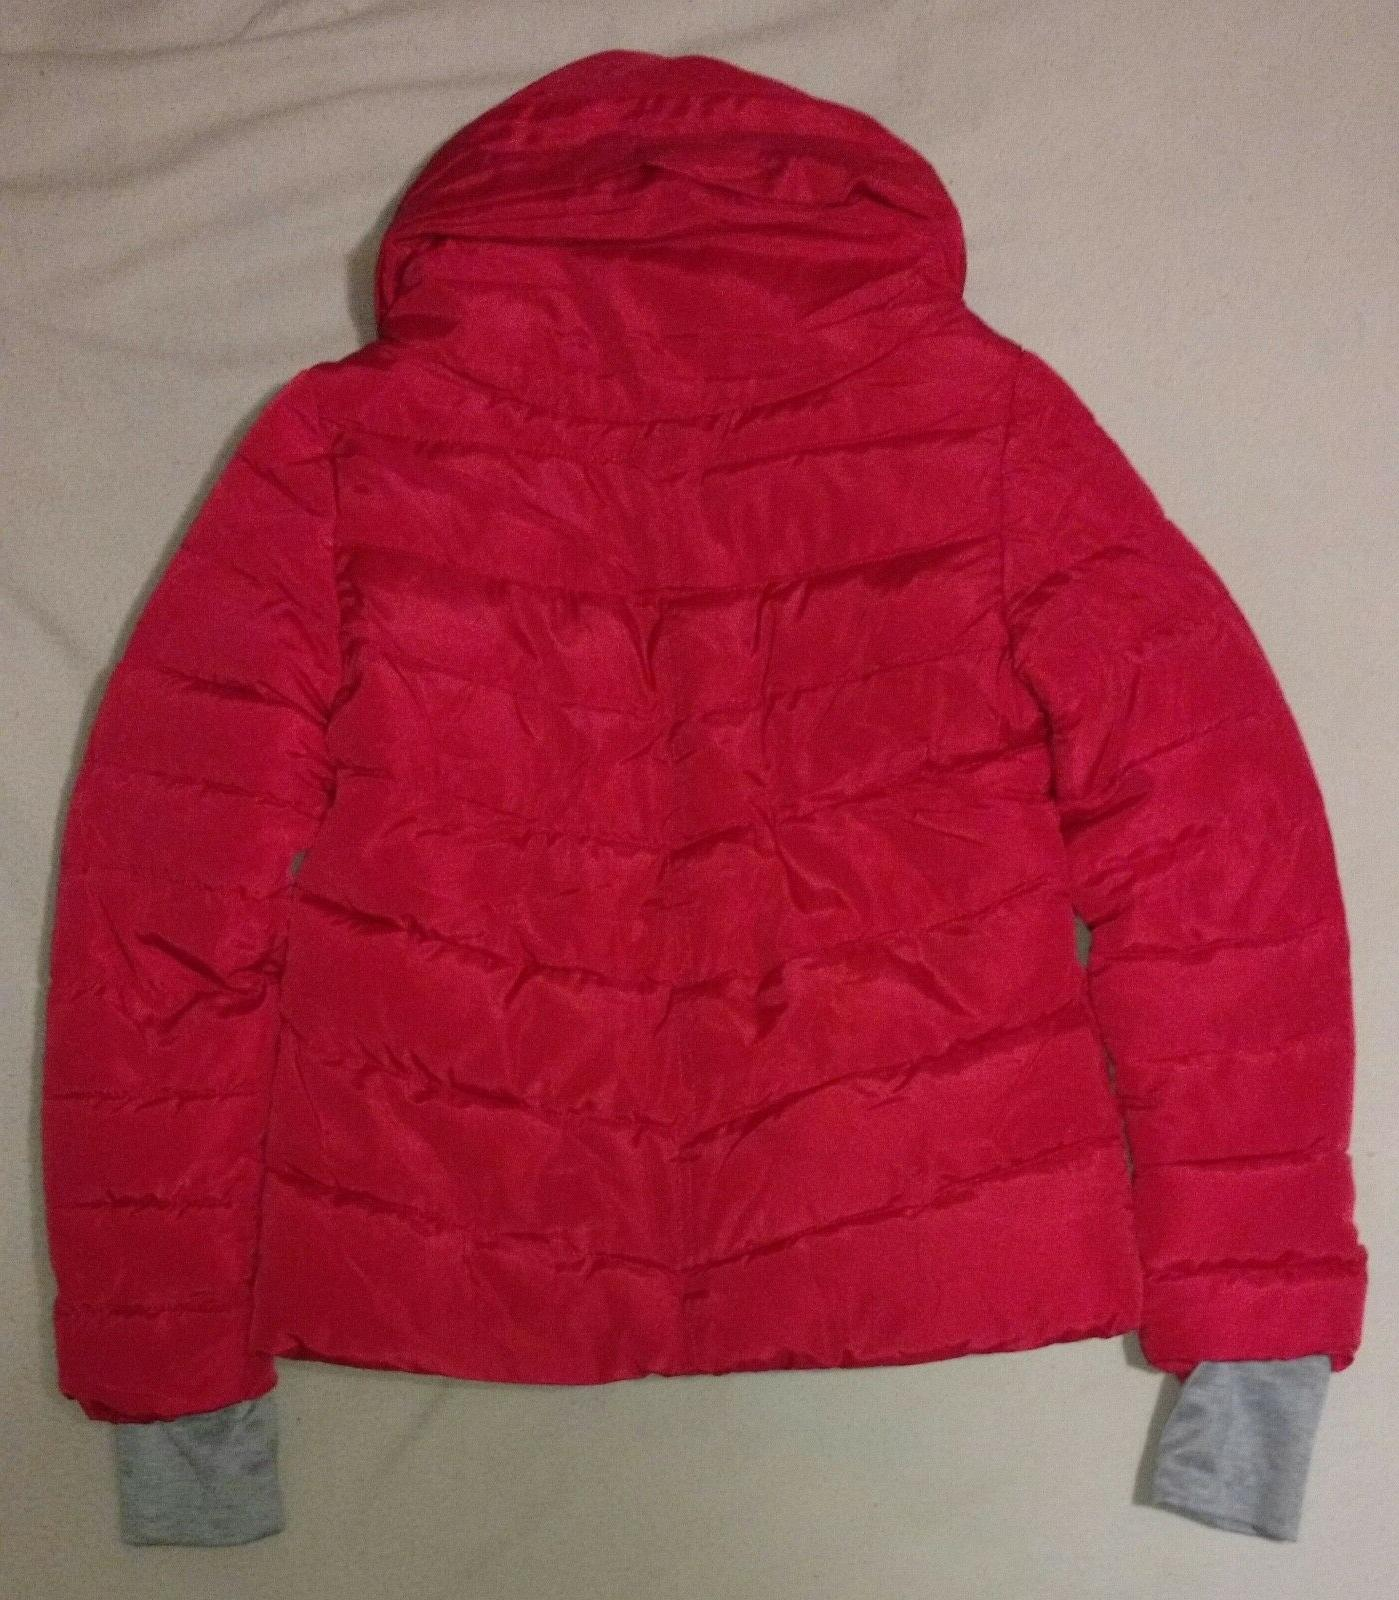 Children's Size brand coat In